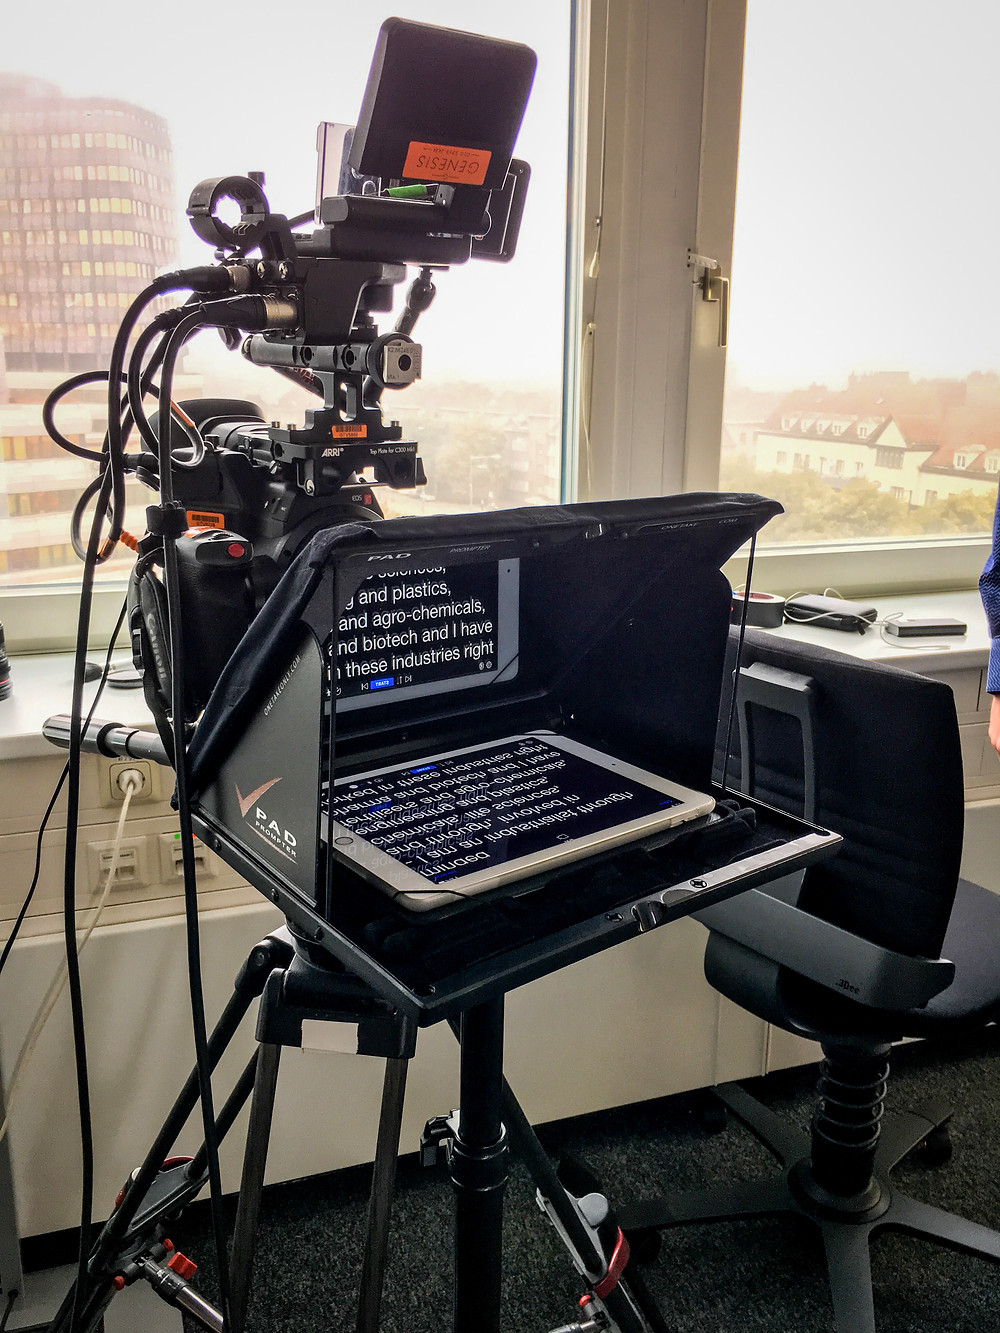 Padprompter from Ontetakeonly